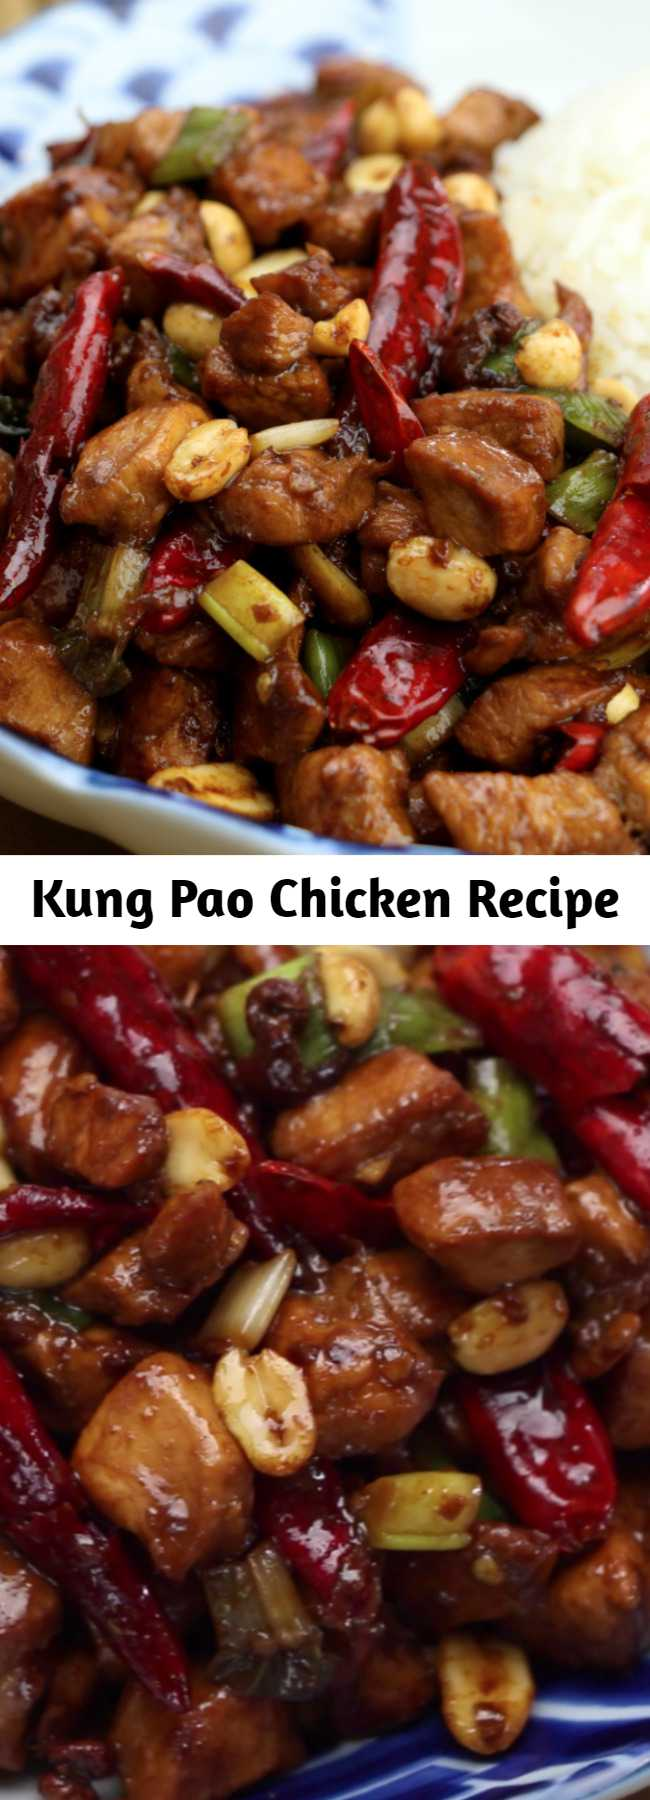 Kung Pao Chicken Recipe - Spicy, sweet and incredibly delicious chicken with peanuts!